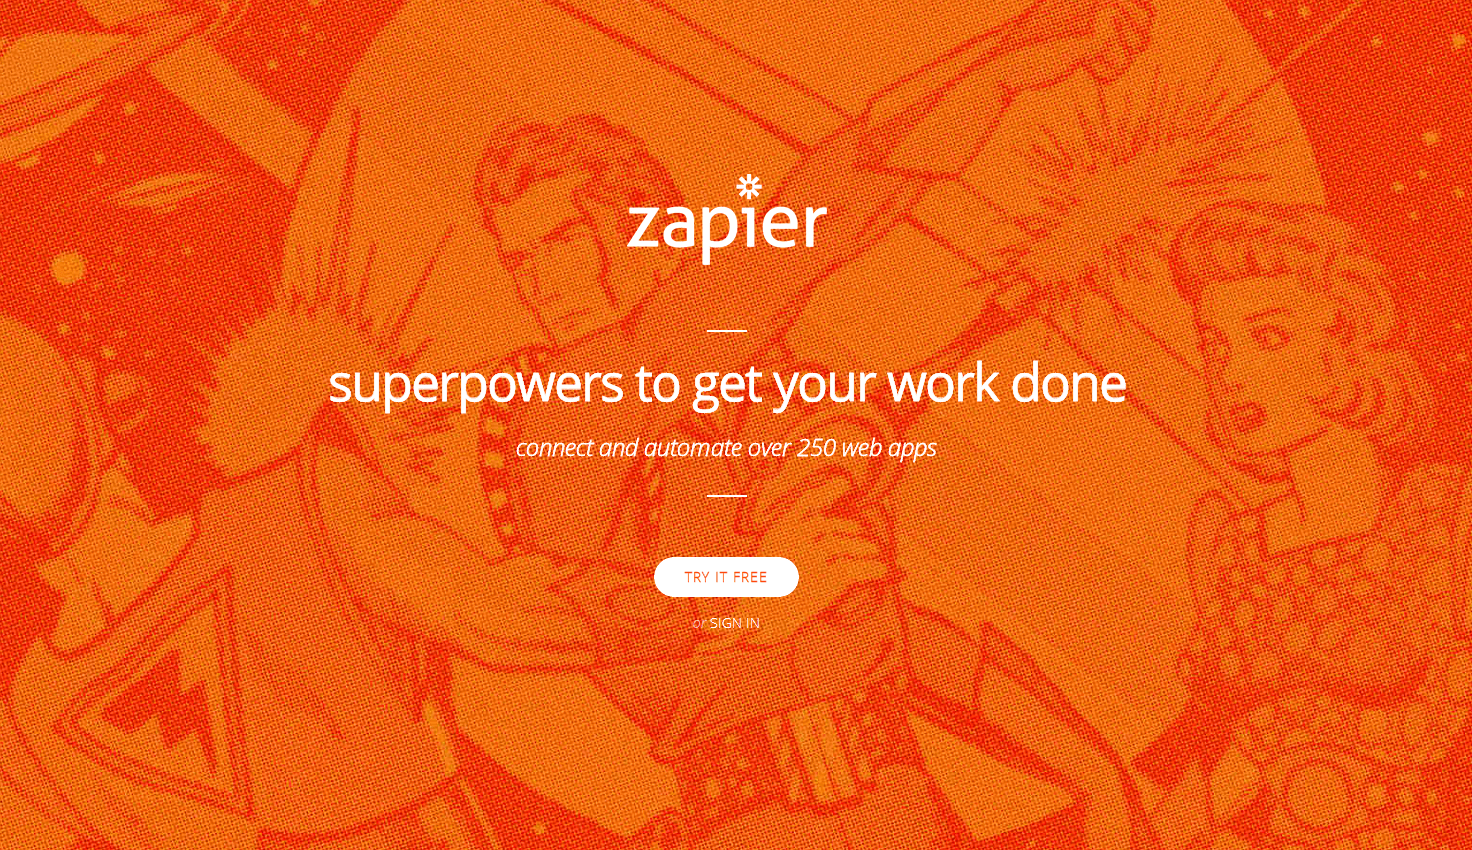 Zapier Superhero Home Page